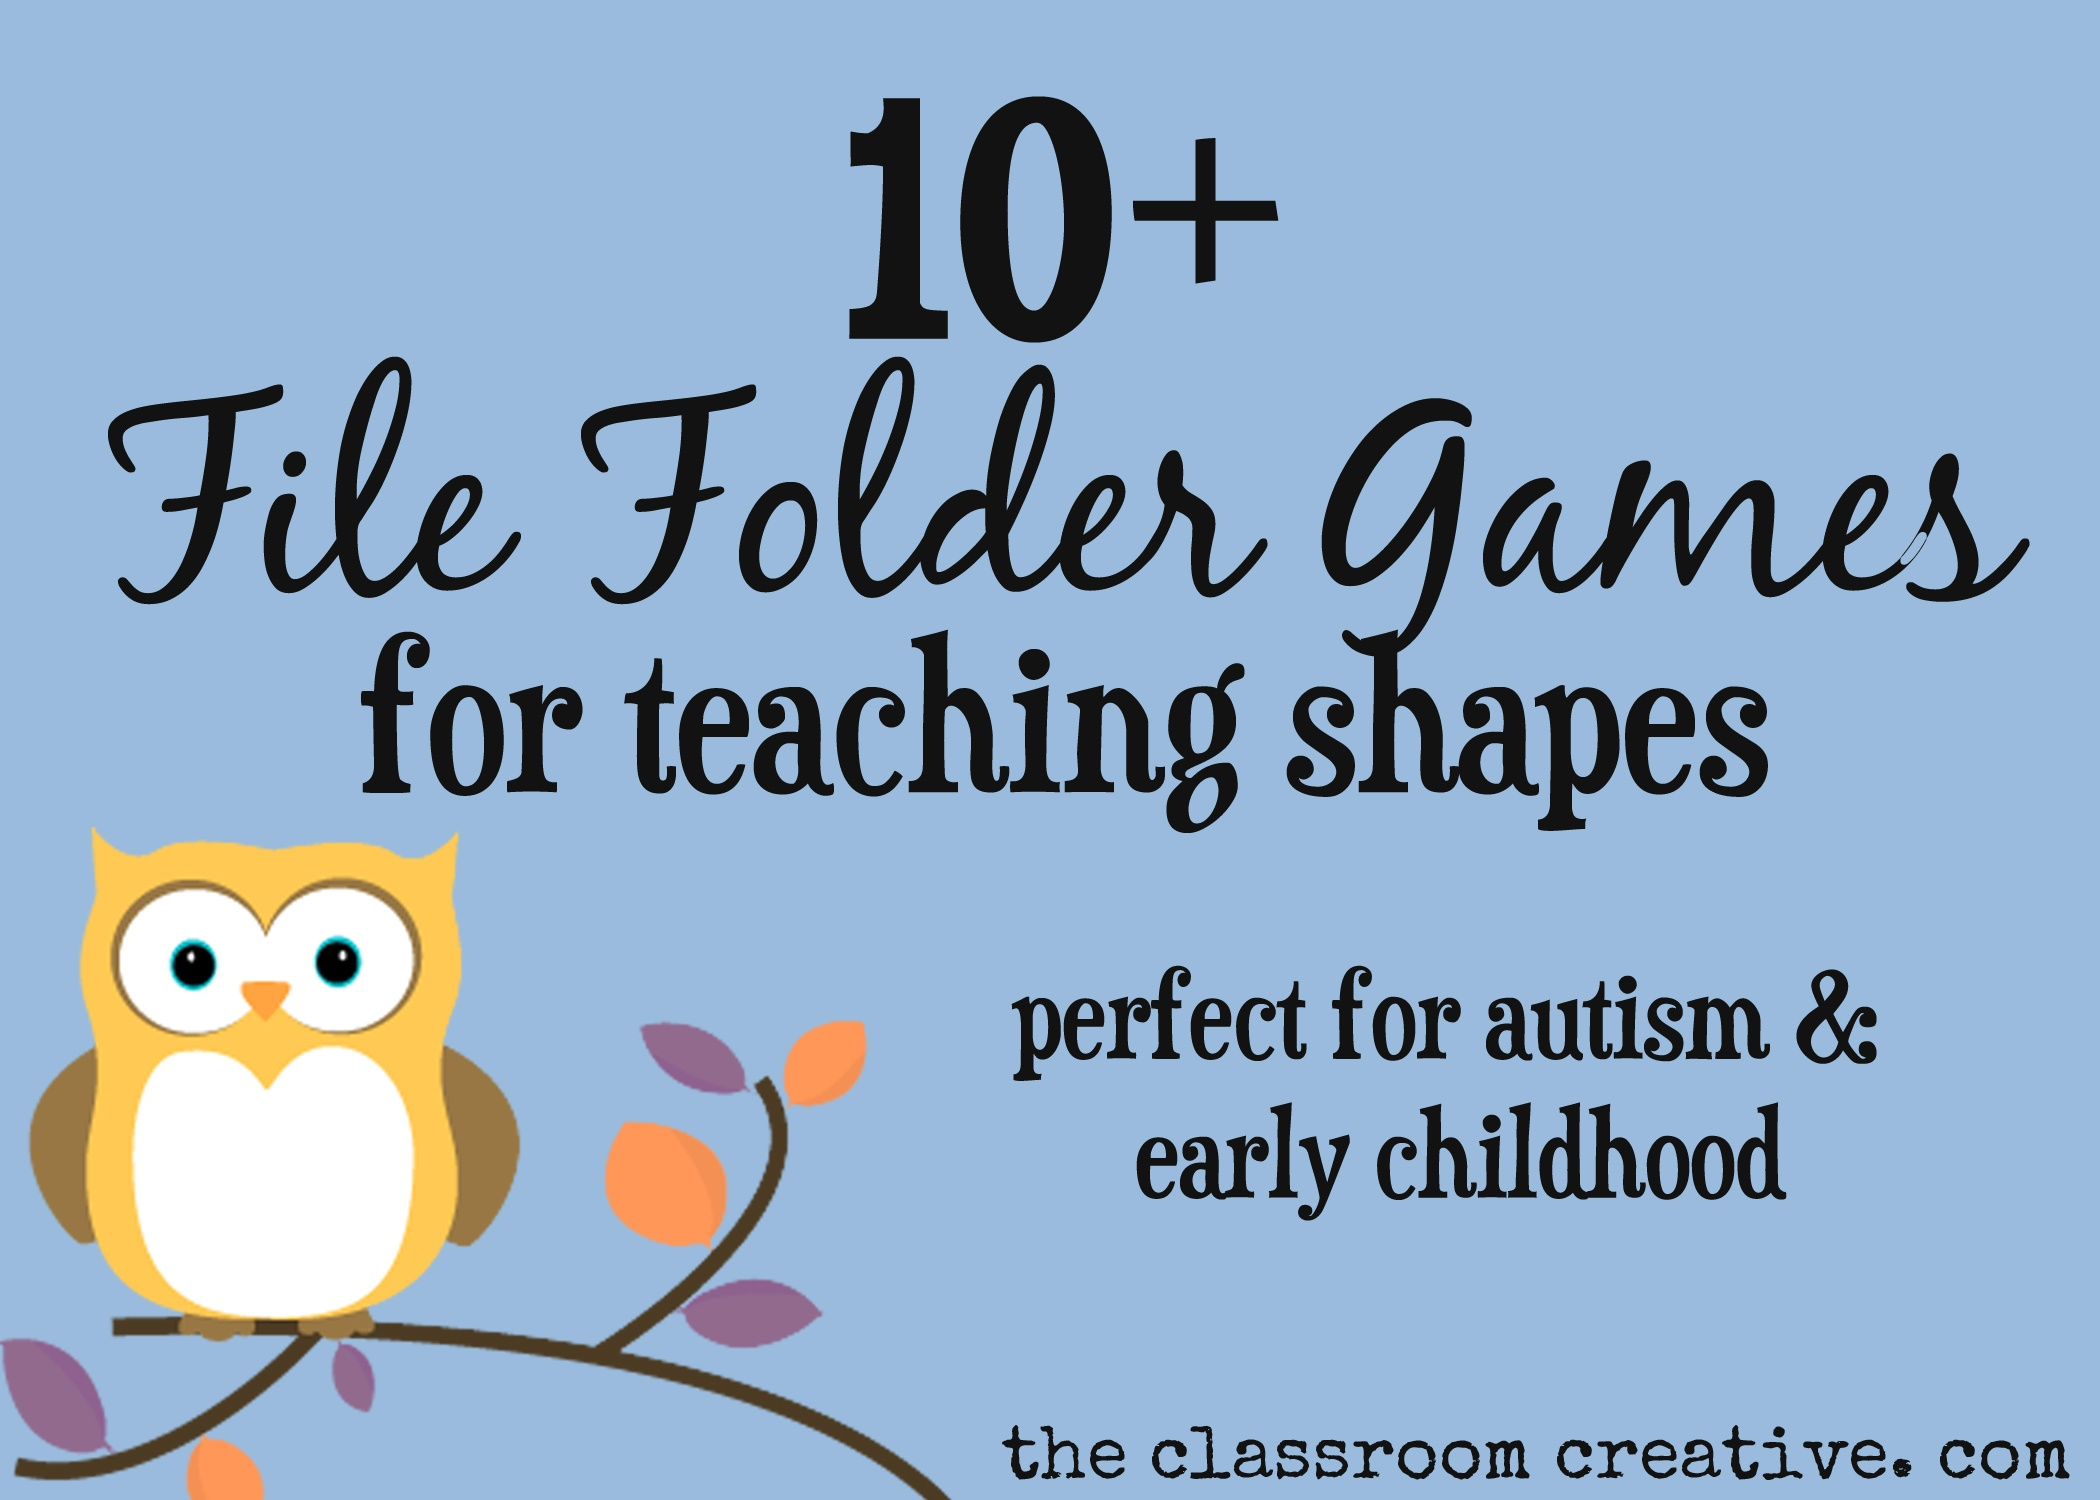 File Folder Games For Teaching Shapes - Free Printable File Folder Games For Preschool